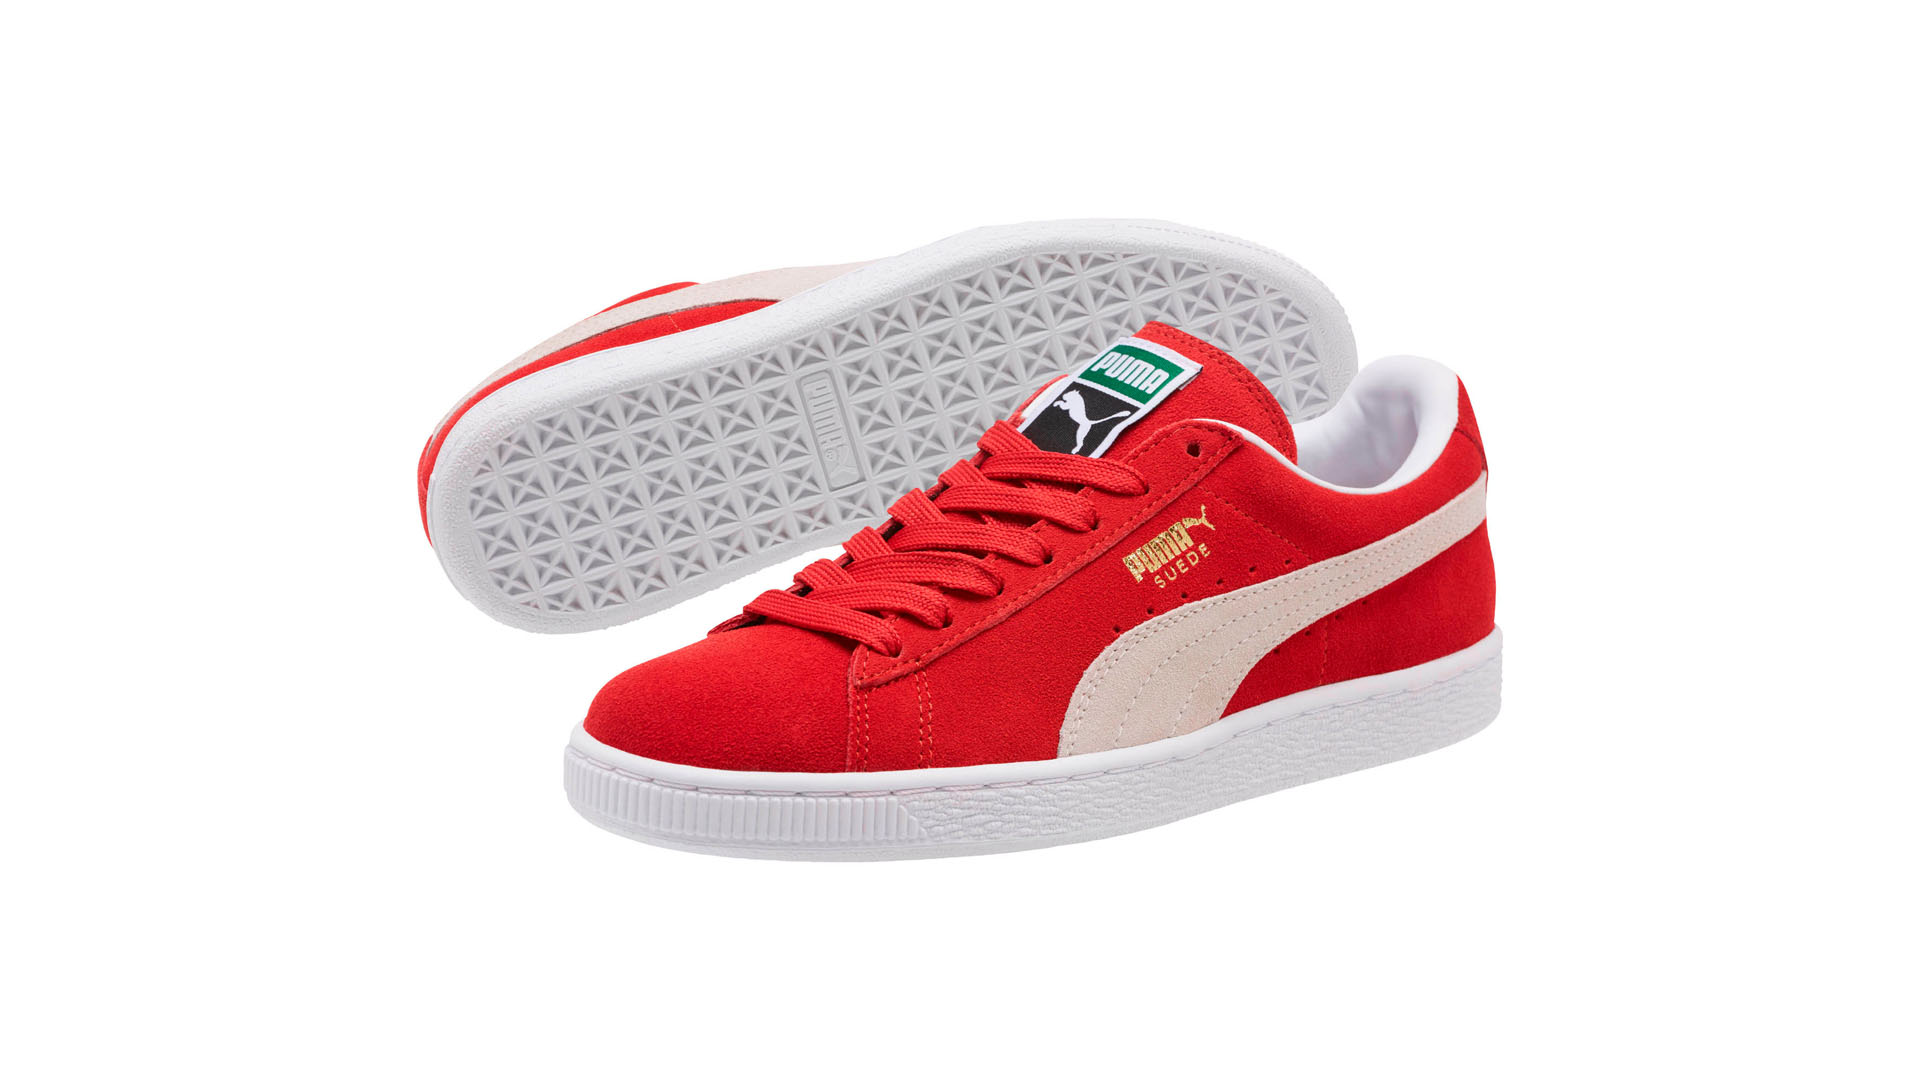 PUMA Suede Is One Of The 5 Things Sports Moms Would Love